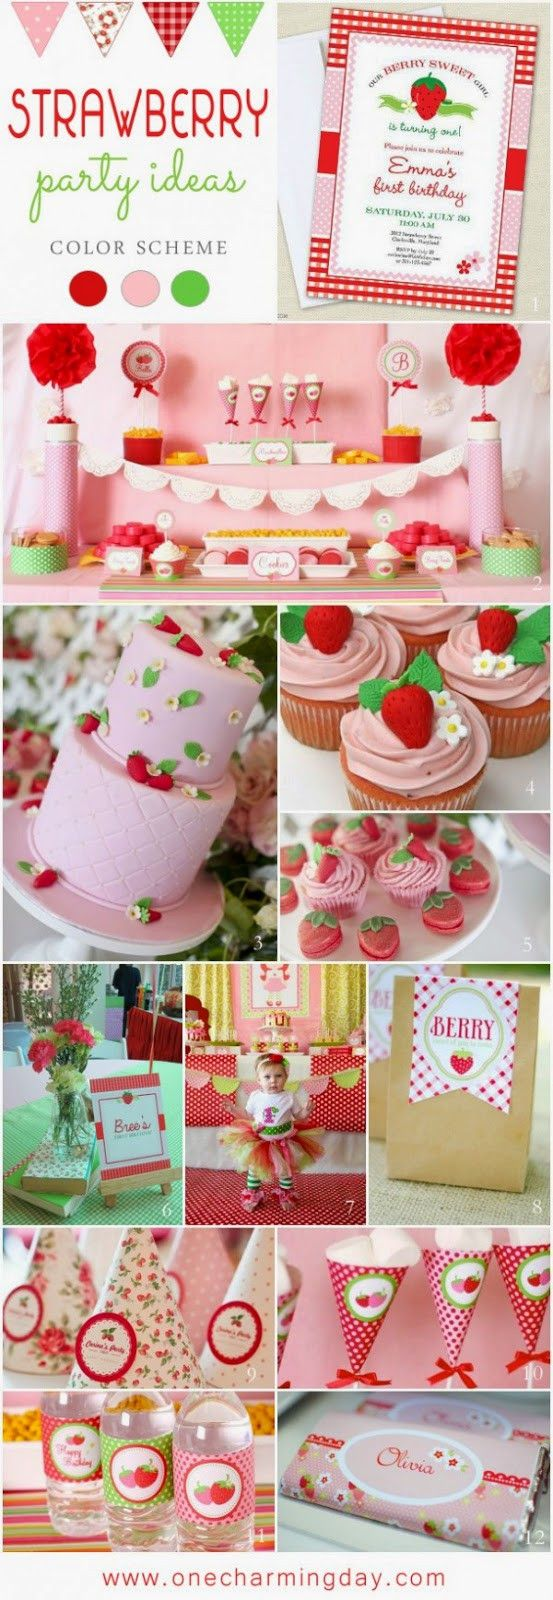 34 Creative Girl First Birthday Party Themes Ideas Best 20 1st Birthday Gift Ideas For First Birthday Party Themes Girl Birthday Themes First Birthday Parties